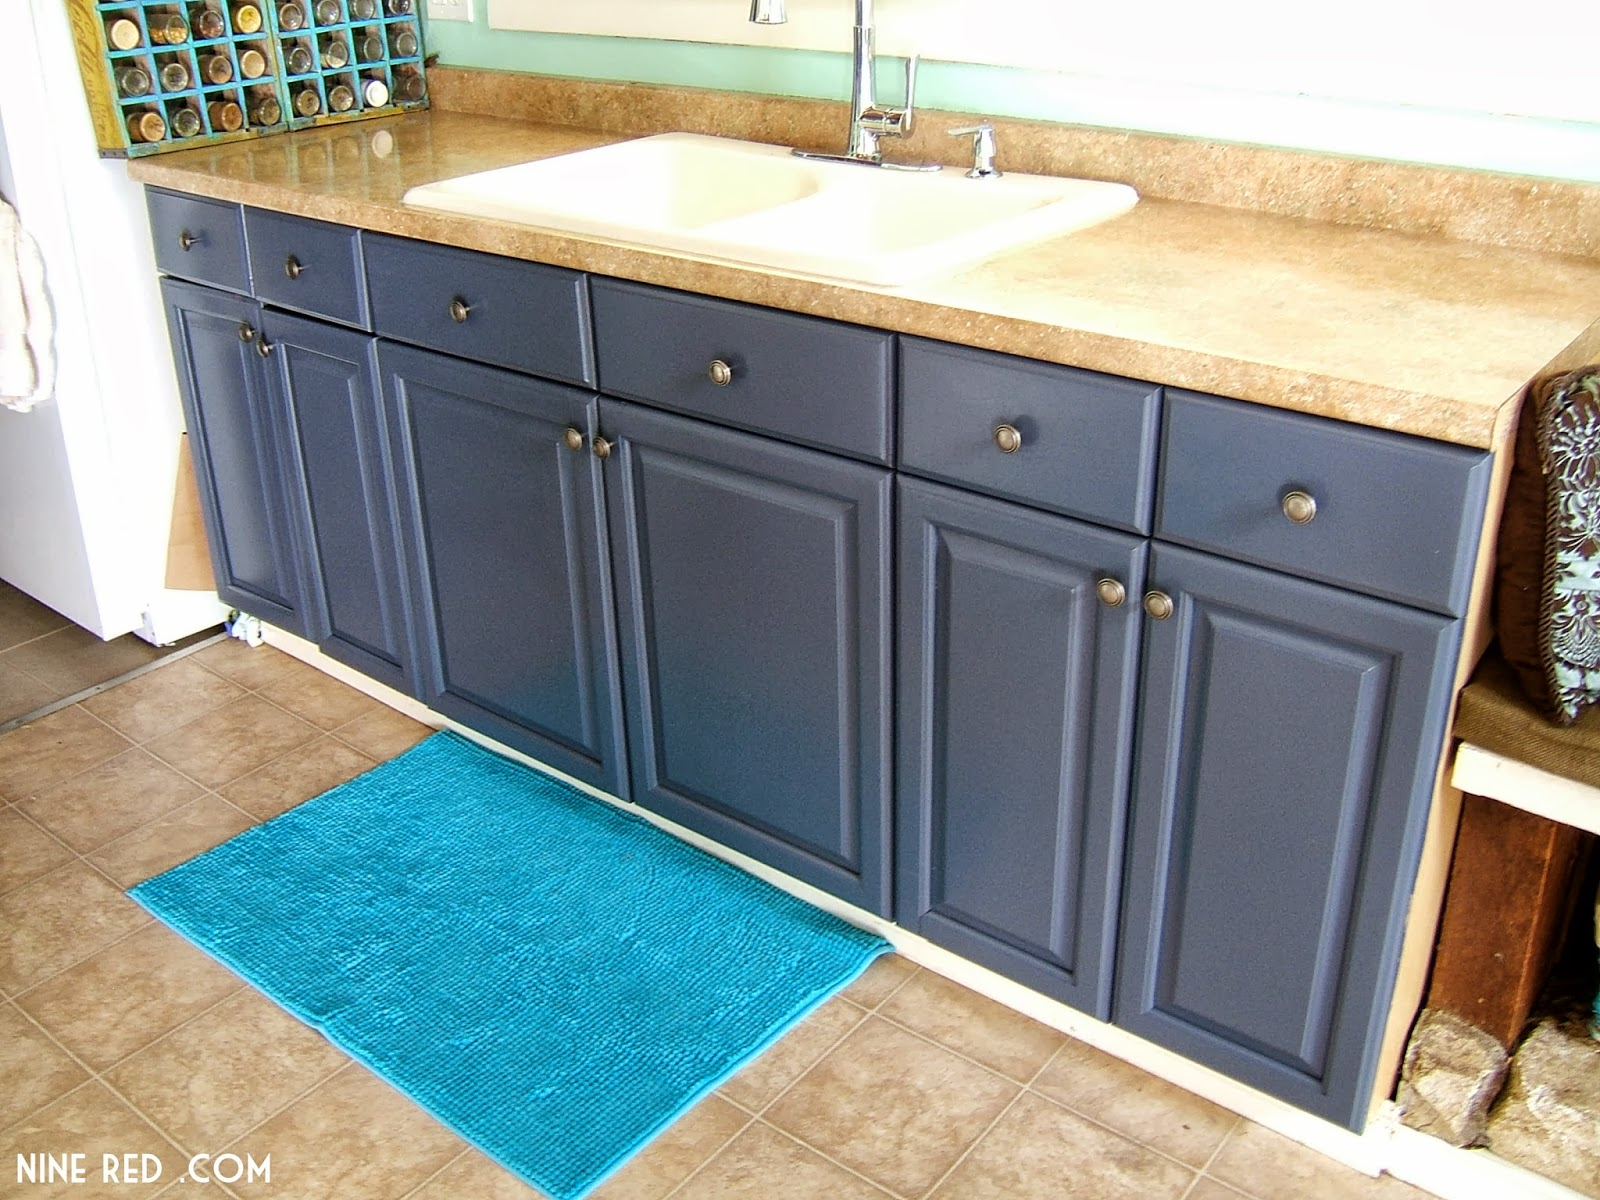 Nine Red: Painting the Kitchen Cabinets: Part 2